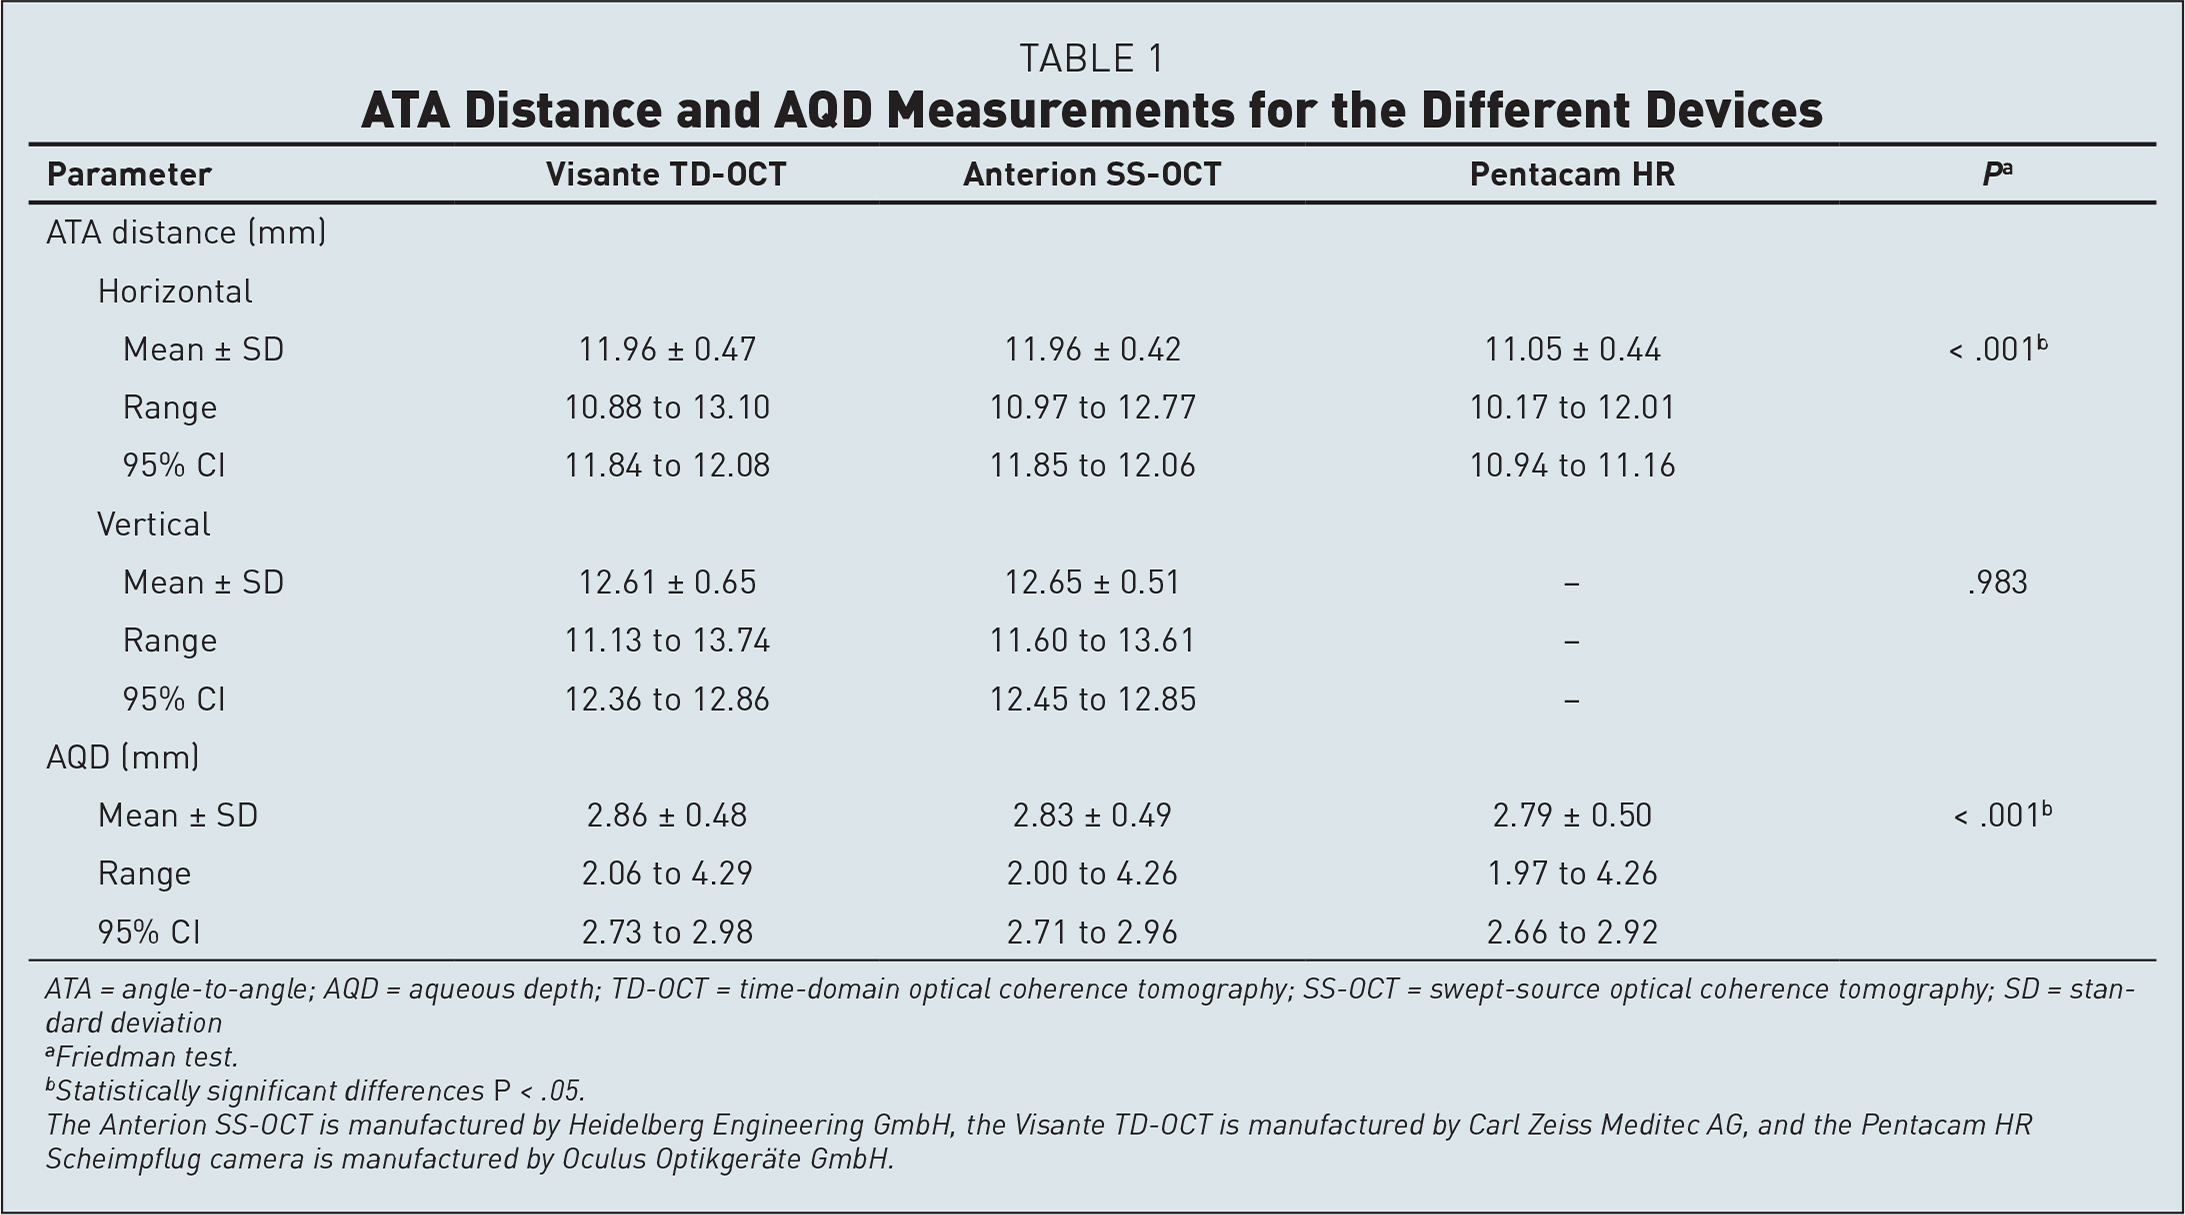 ATA Distance and AQD Measurements for the Different Devices